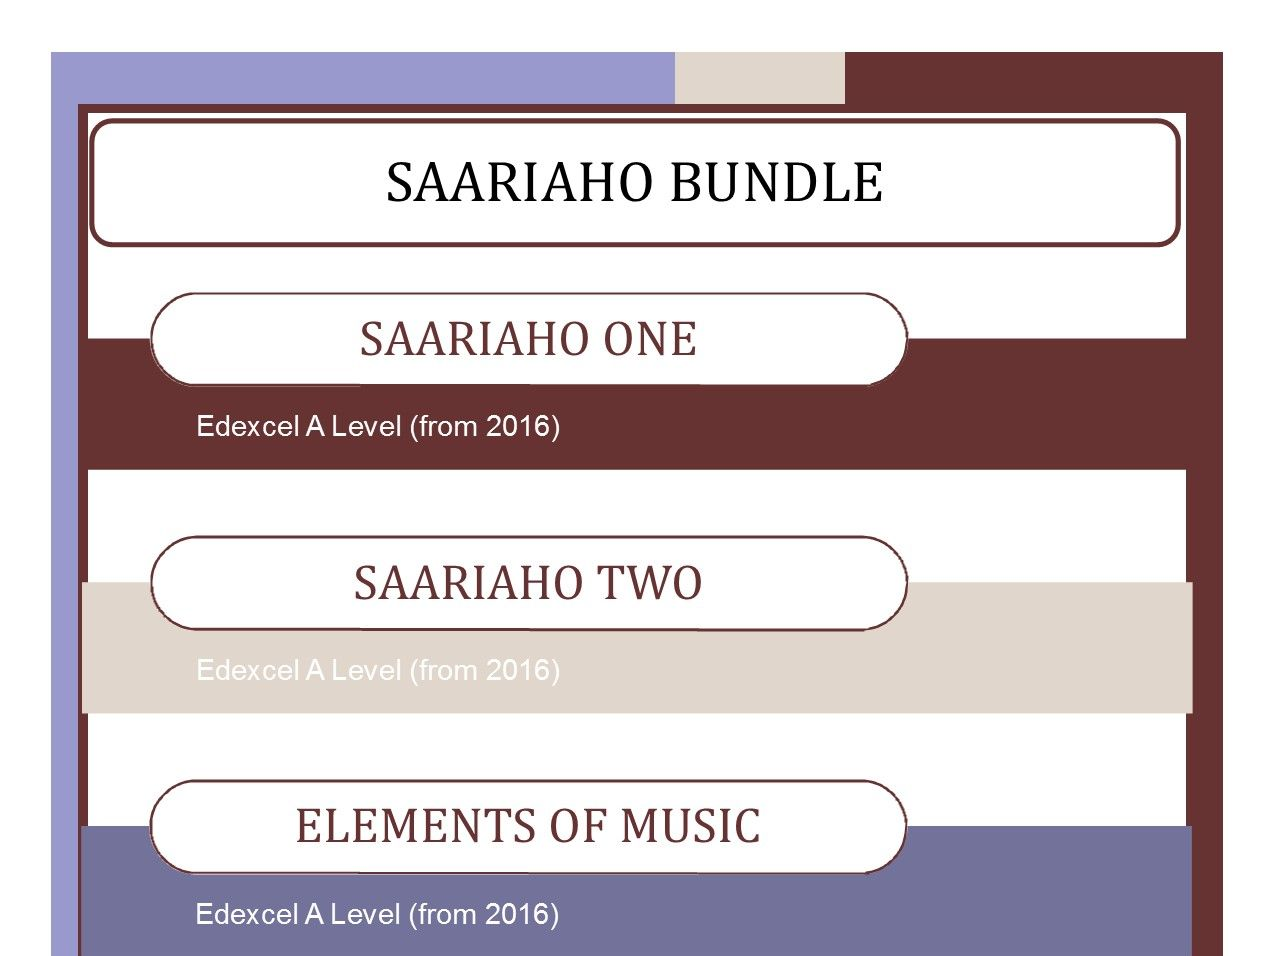 Saariaho Bundle for Edexcel A Level (2016-)